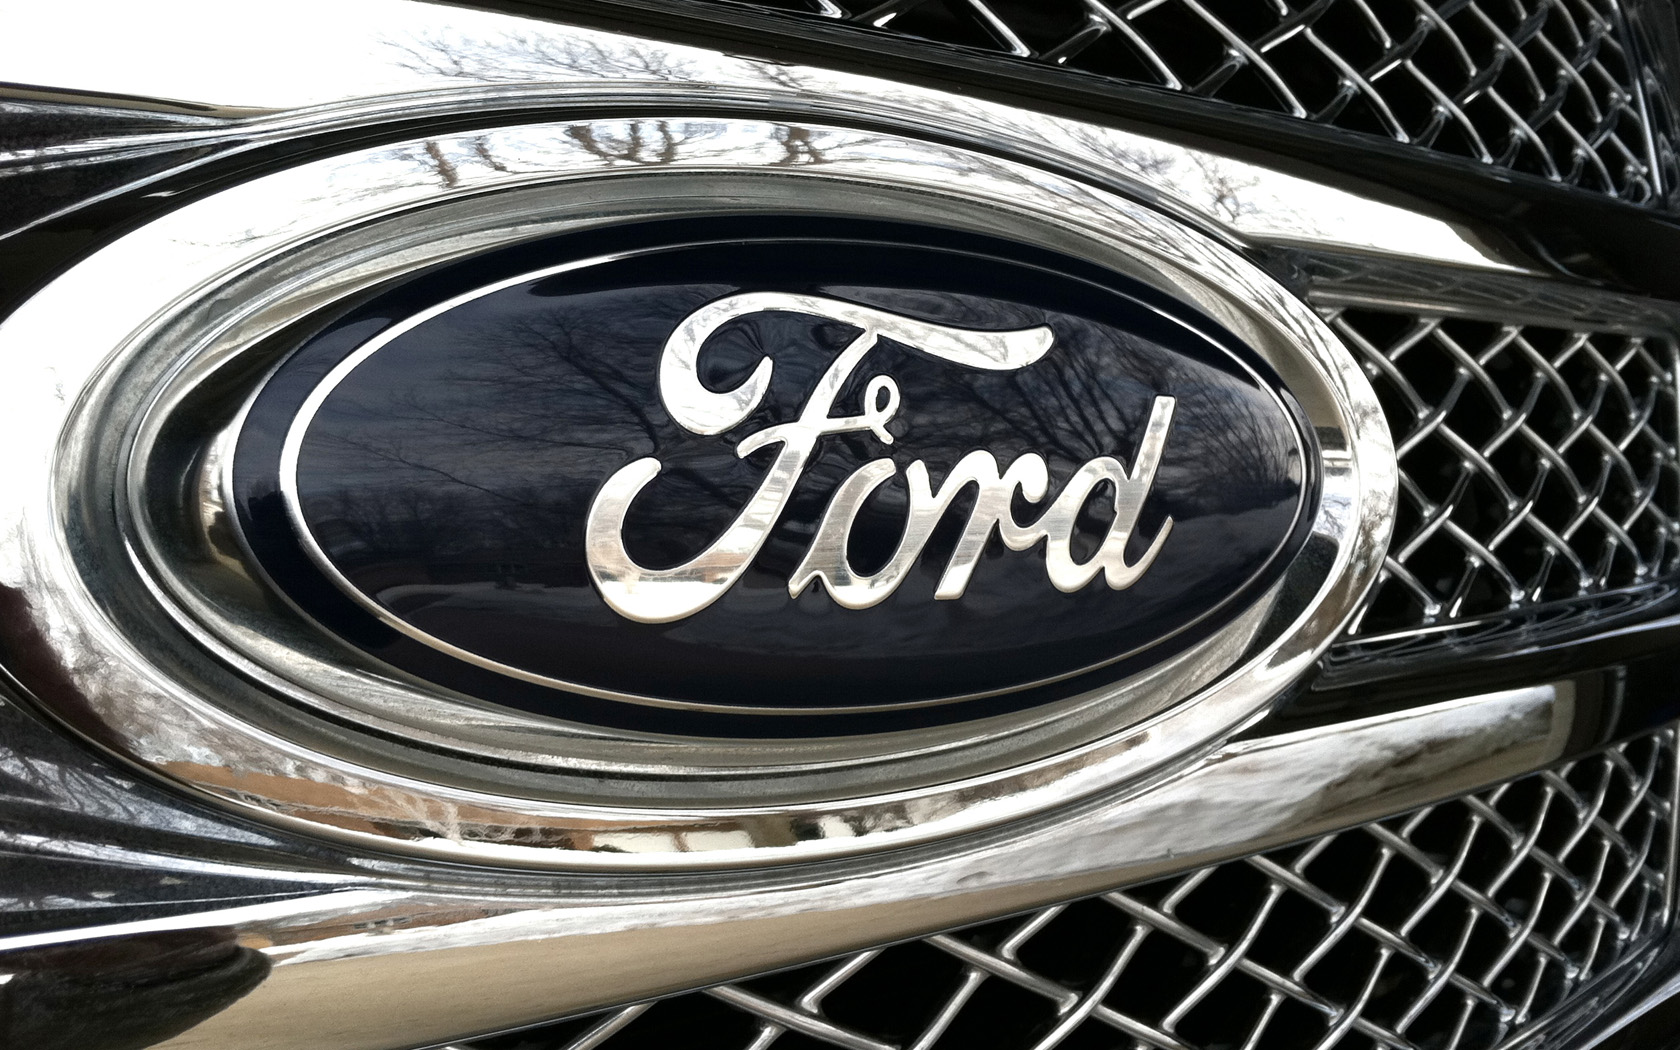 Ford invests $182.2 million in cloud-based software company Pivotal